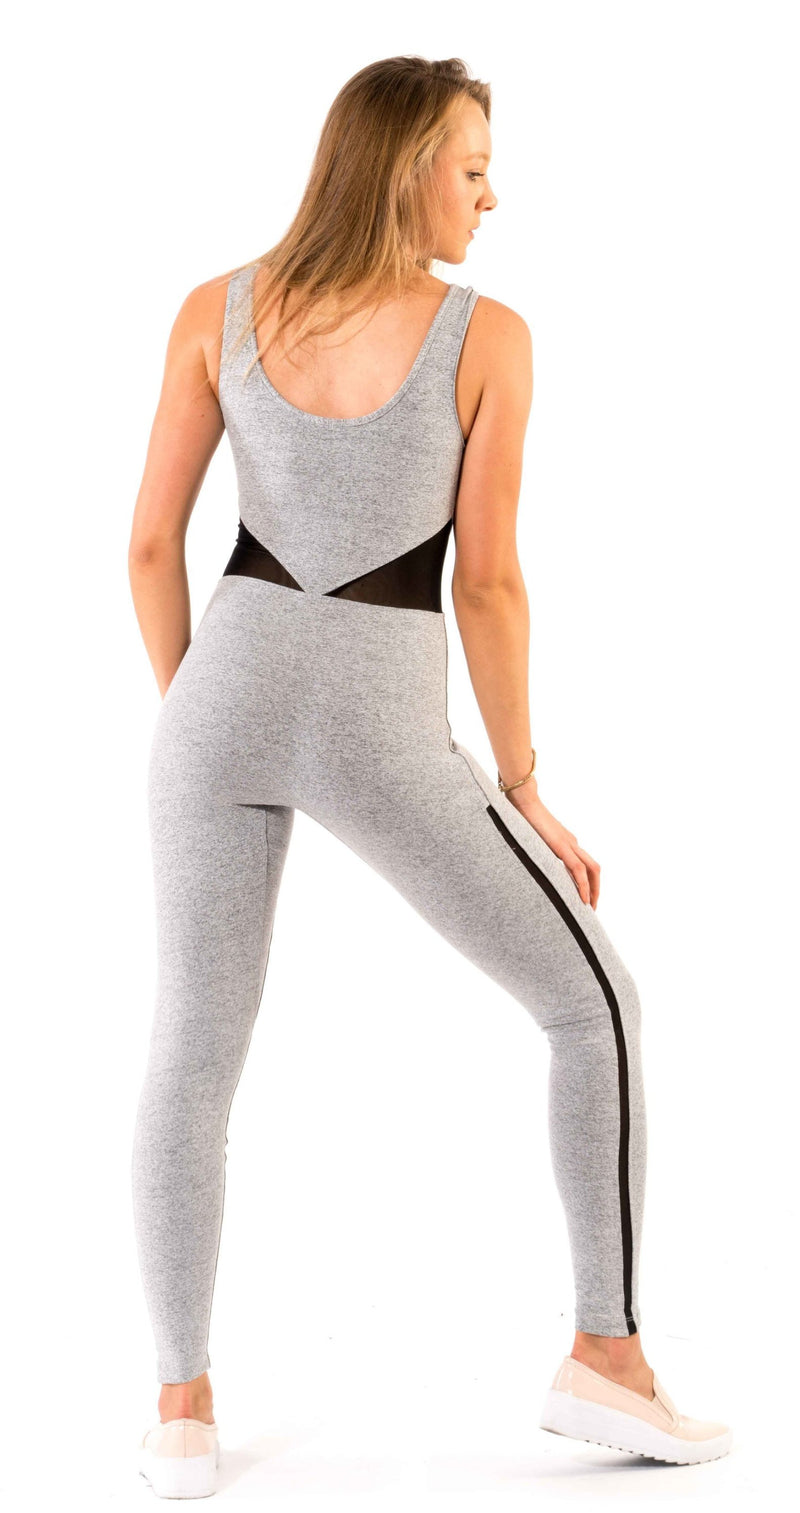 Shama Jade Invisible Luxury Jumpsuit: Grey - Shama Jade | Women's Luxury Yoga Jumpsuits and Activewear